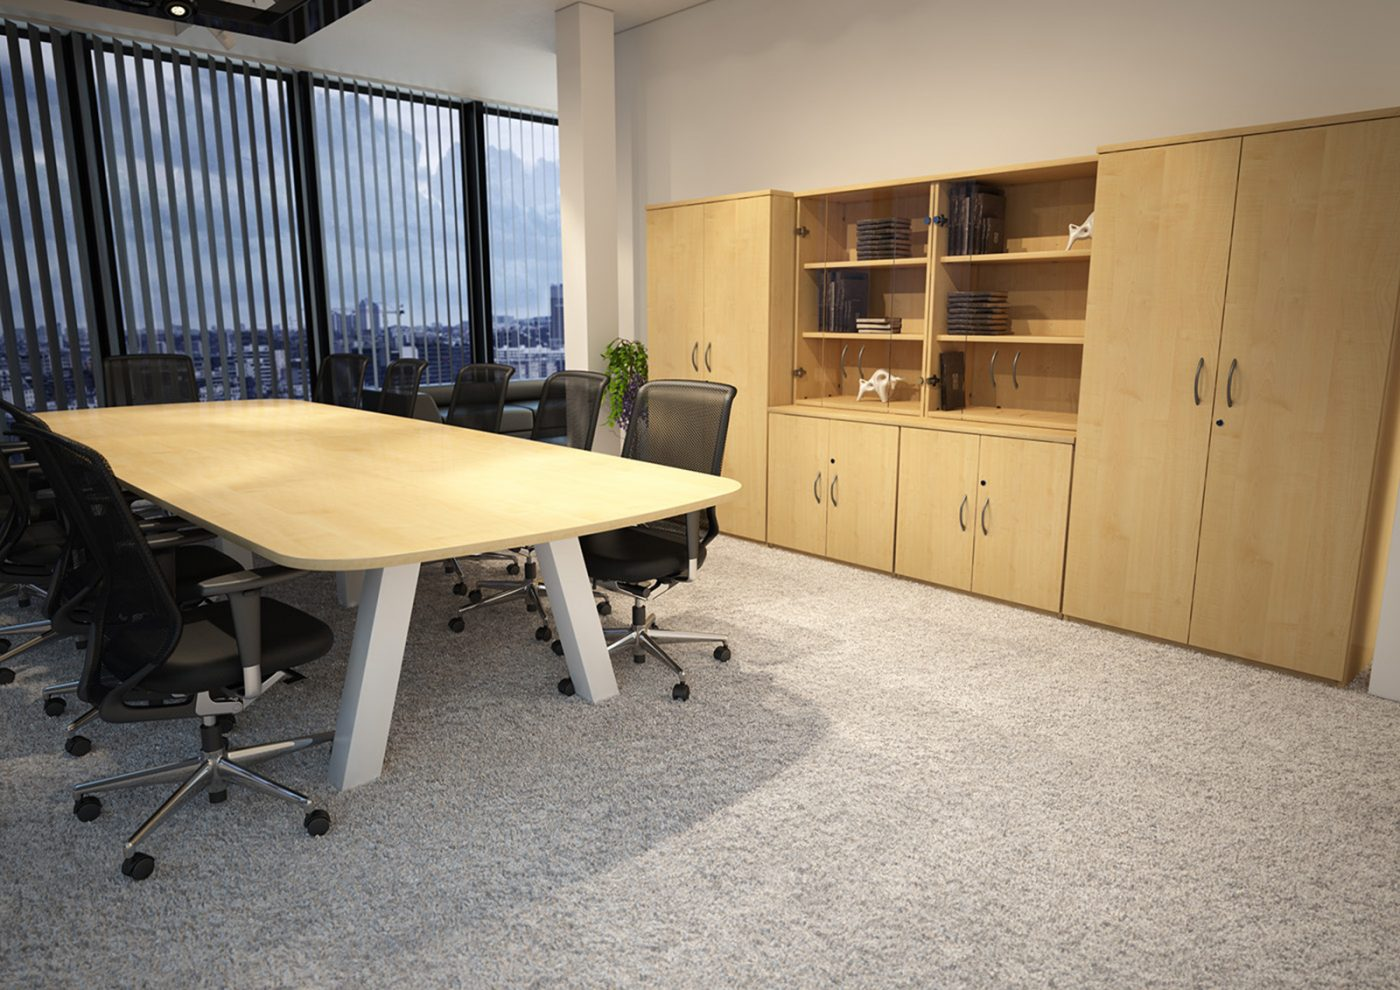 force, boardroom table, meeting table, white frame, rectangular table